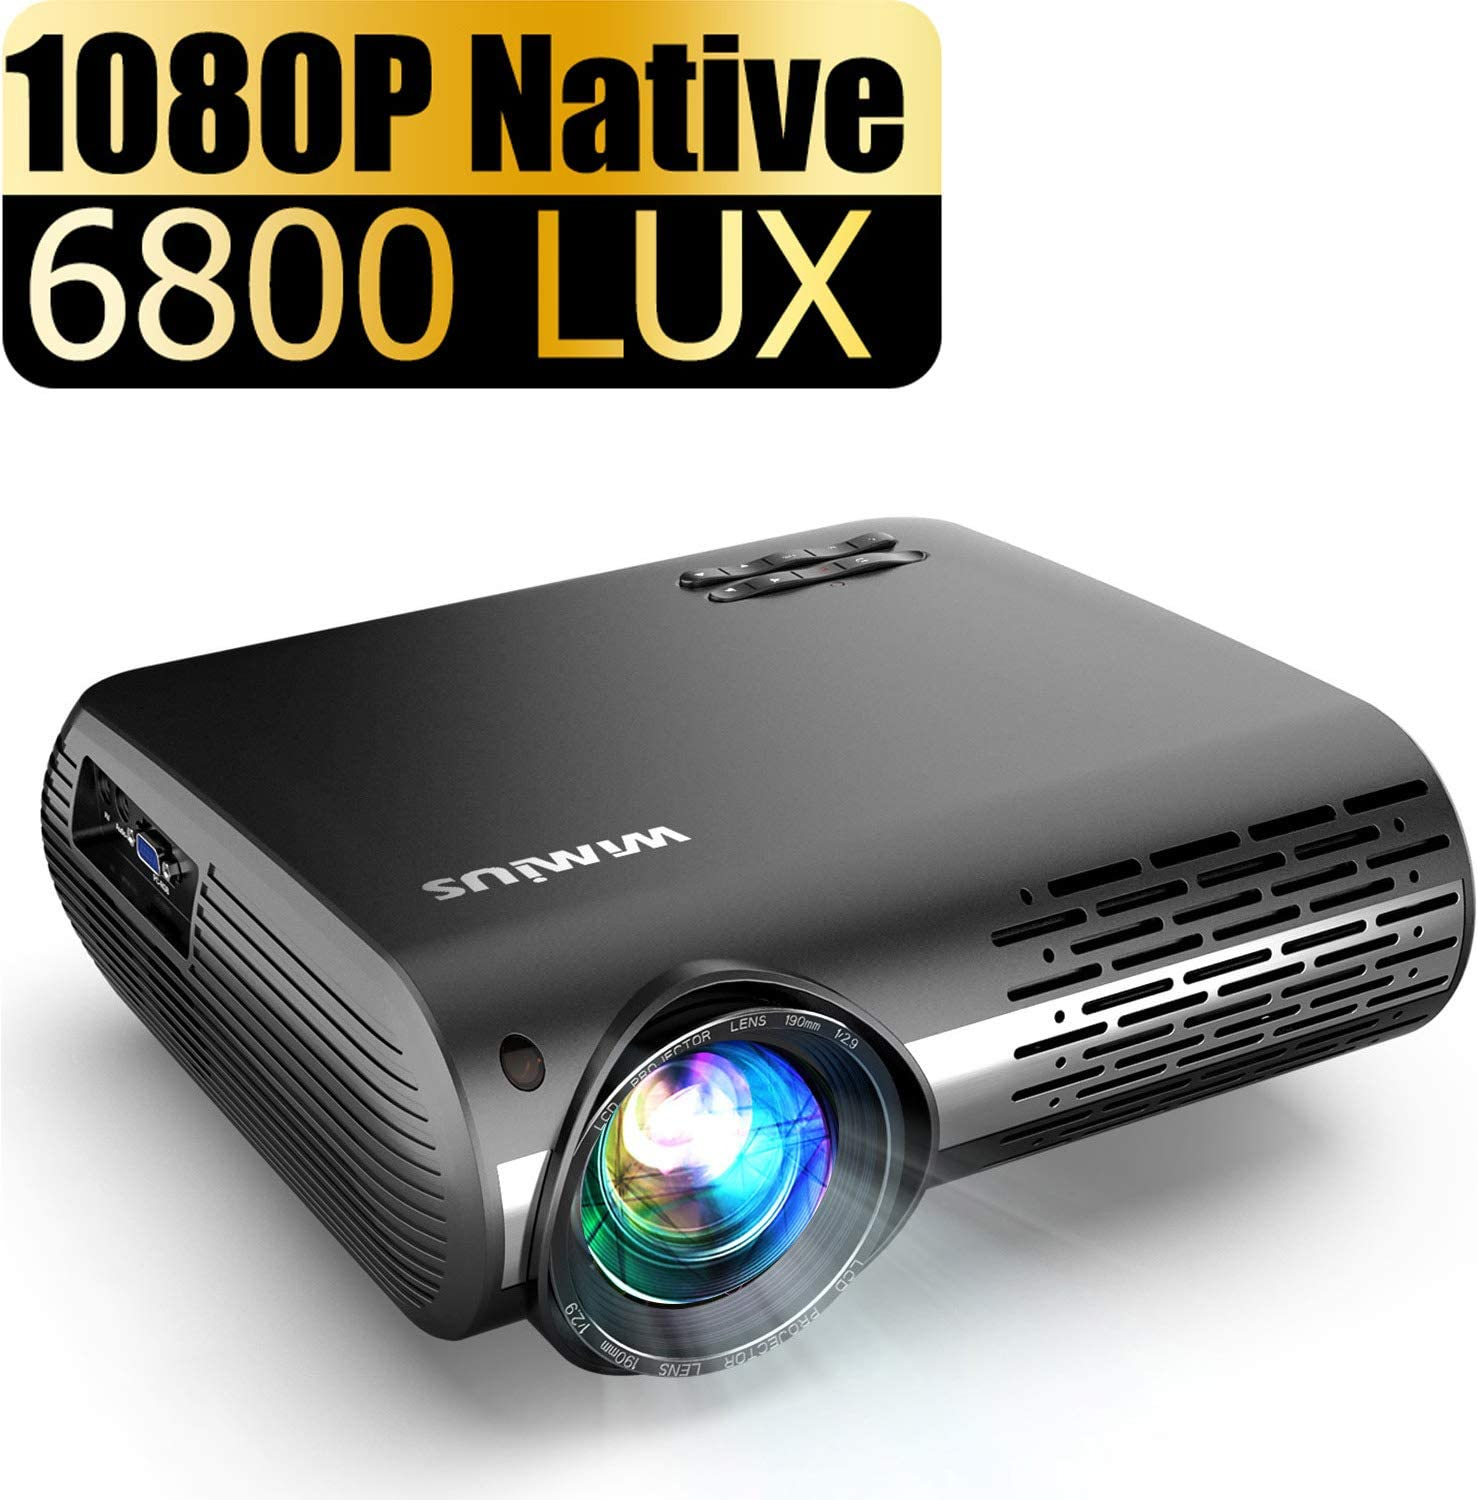 Native 1080P Projector, WiMiUS Upgrade 6800 Lumens Projector Support 4K Dolby 200'' Display, 4D ±50° Keystone Correction, Zoom Function for Both Indoor and Outdoor Use